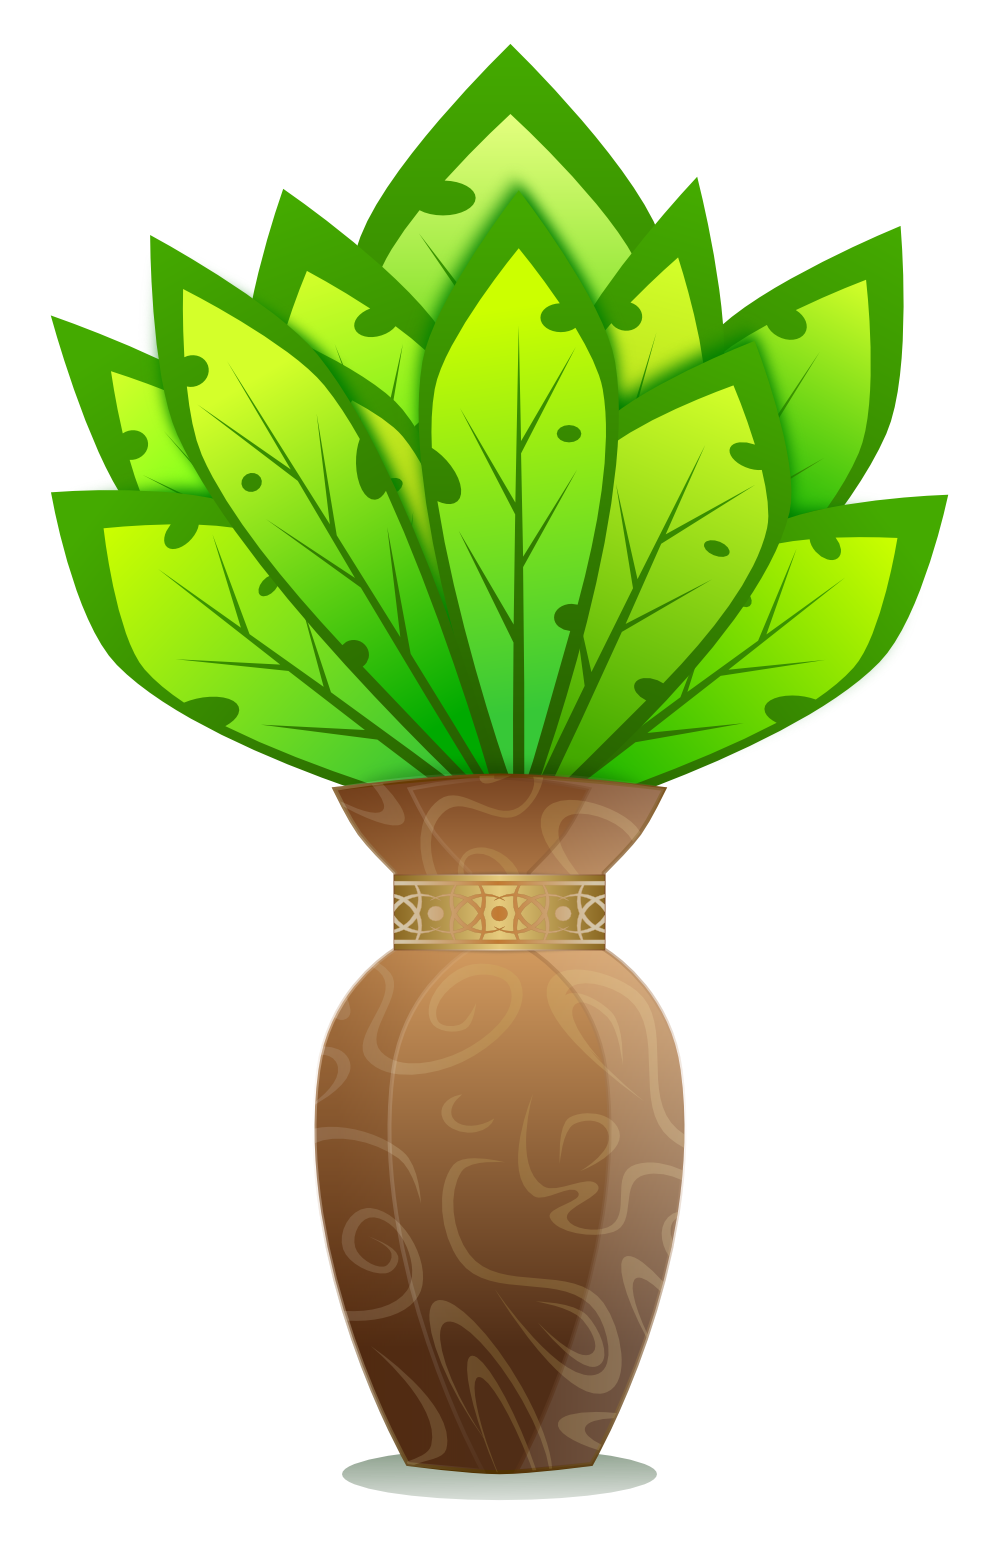 Plant images free download clip art on 3.